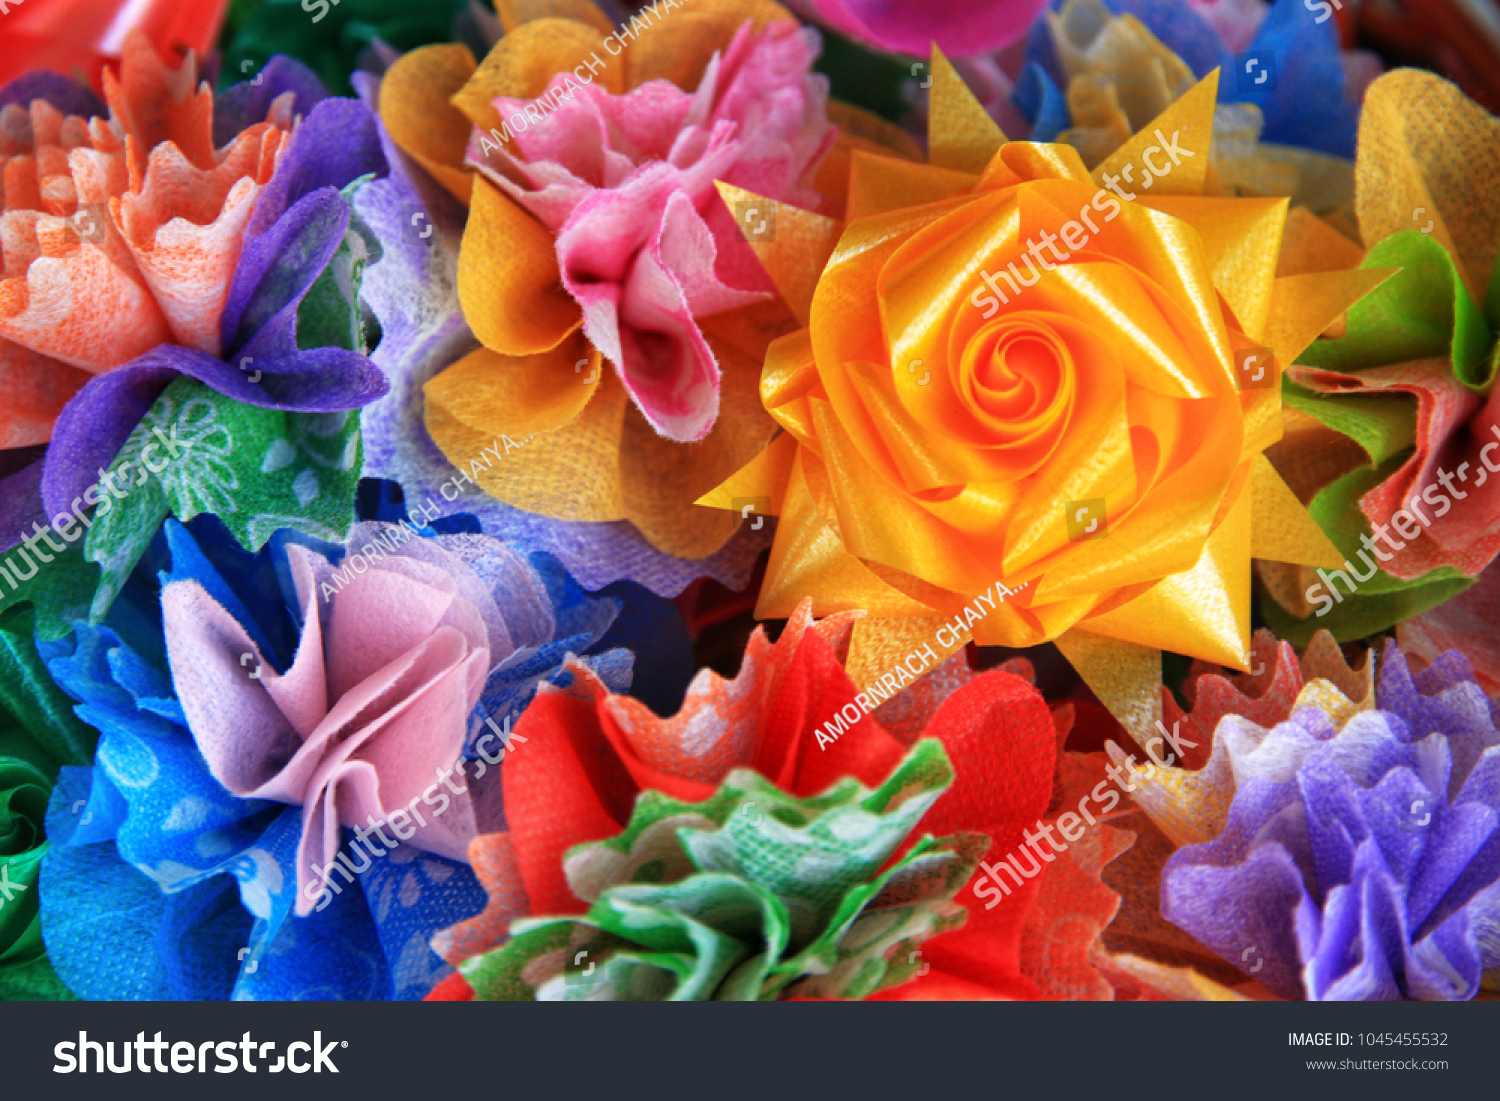 Close Colorful Ribbon Flowers Coins Folding Stock Photo Edit Now